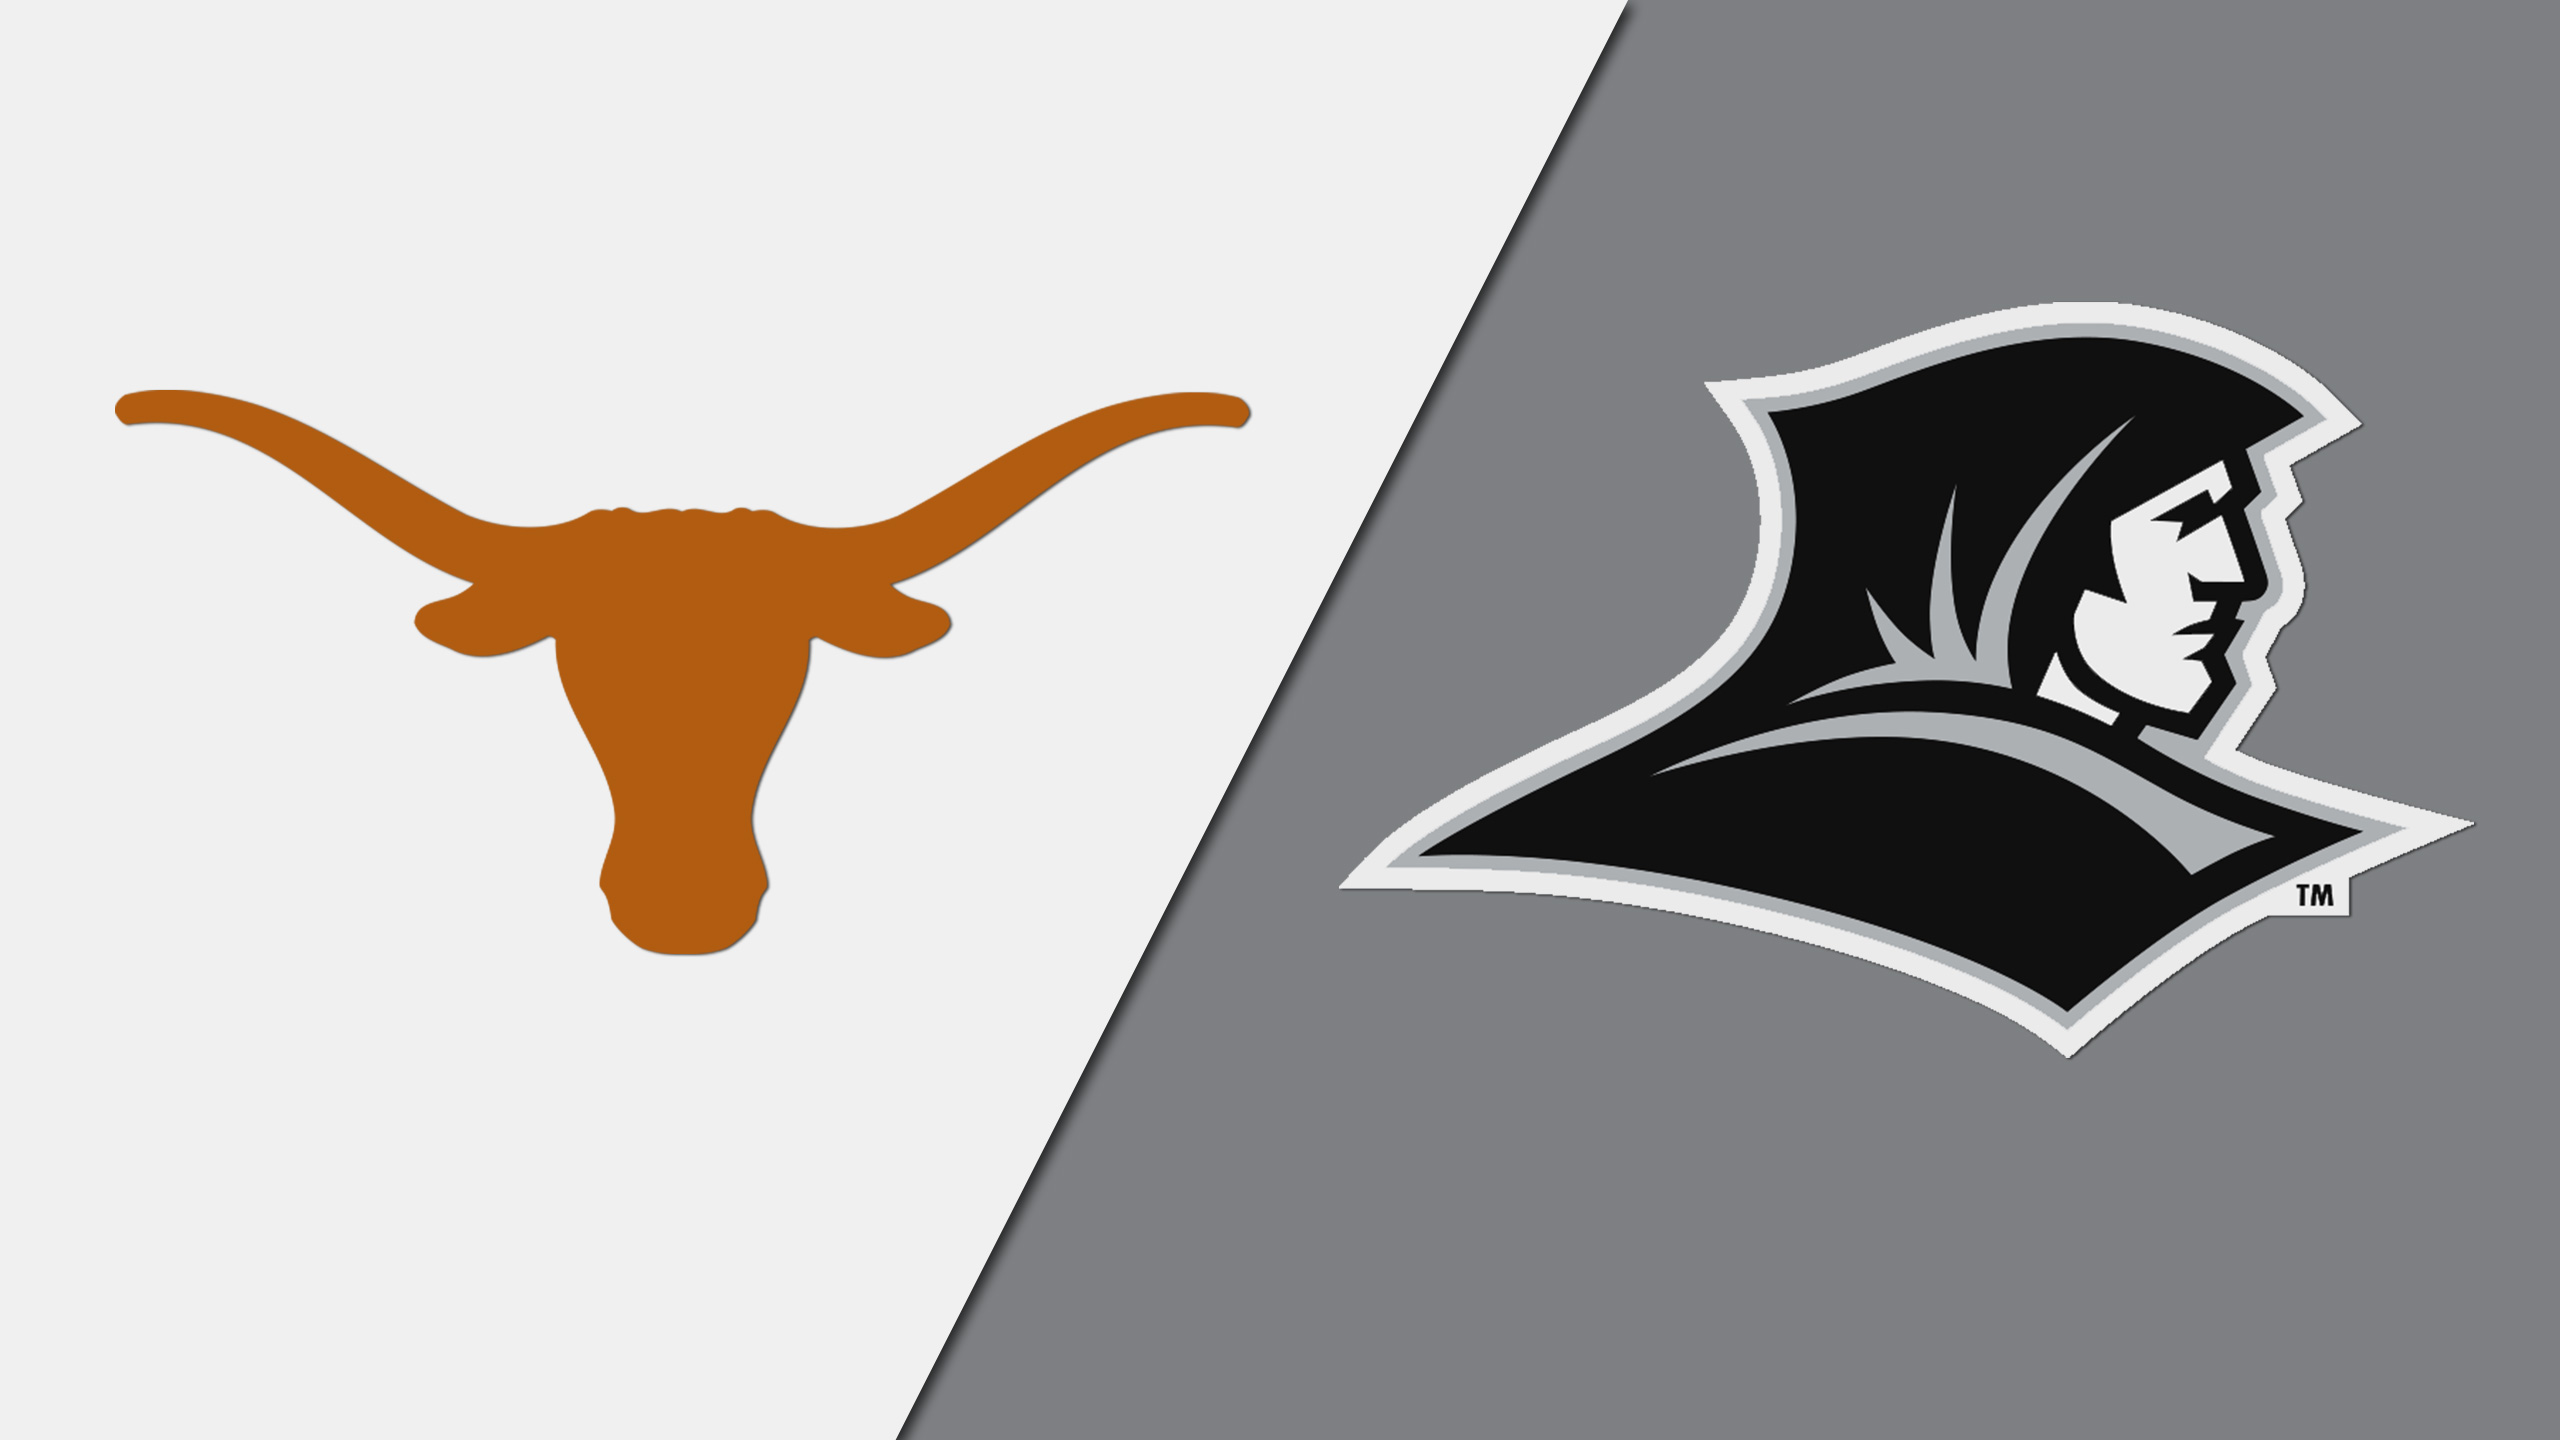 #18 Texas vs. #25 Providence (M Basketball) (re-air)